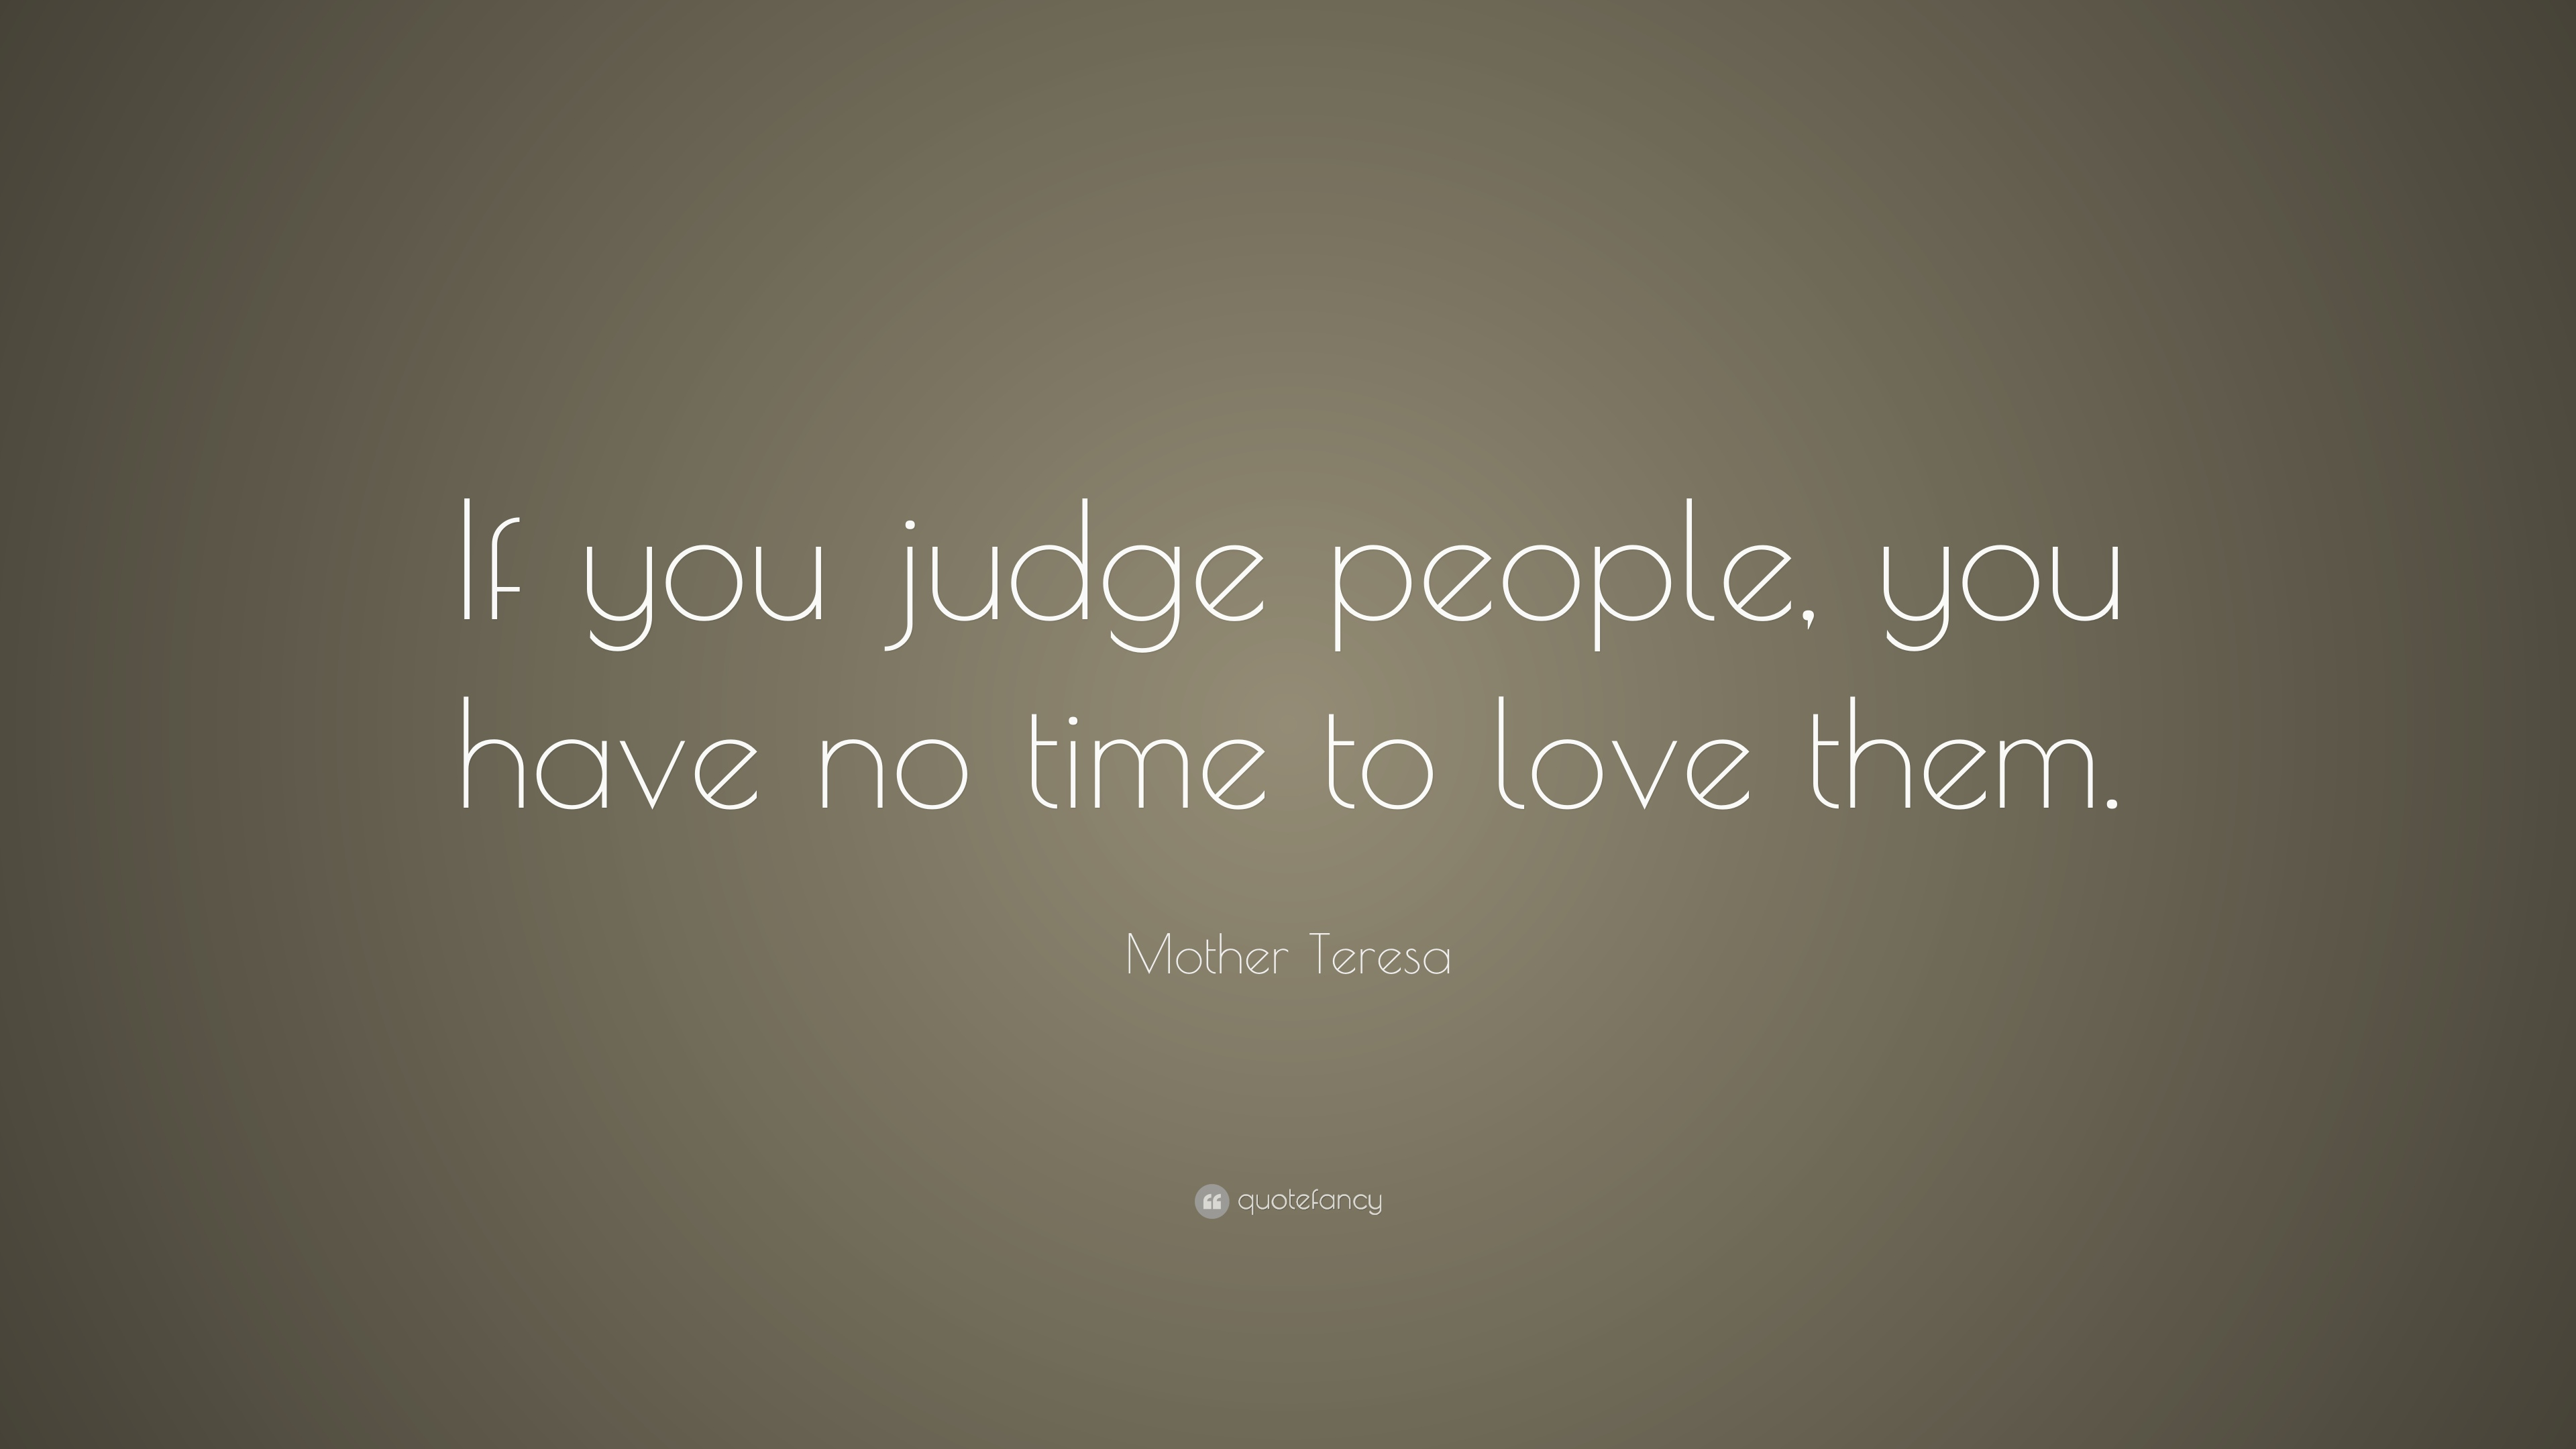 Mother Teresa Quote If You Judge People You Have No Time To Love